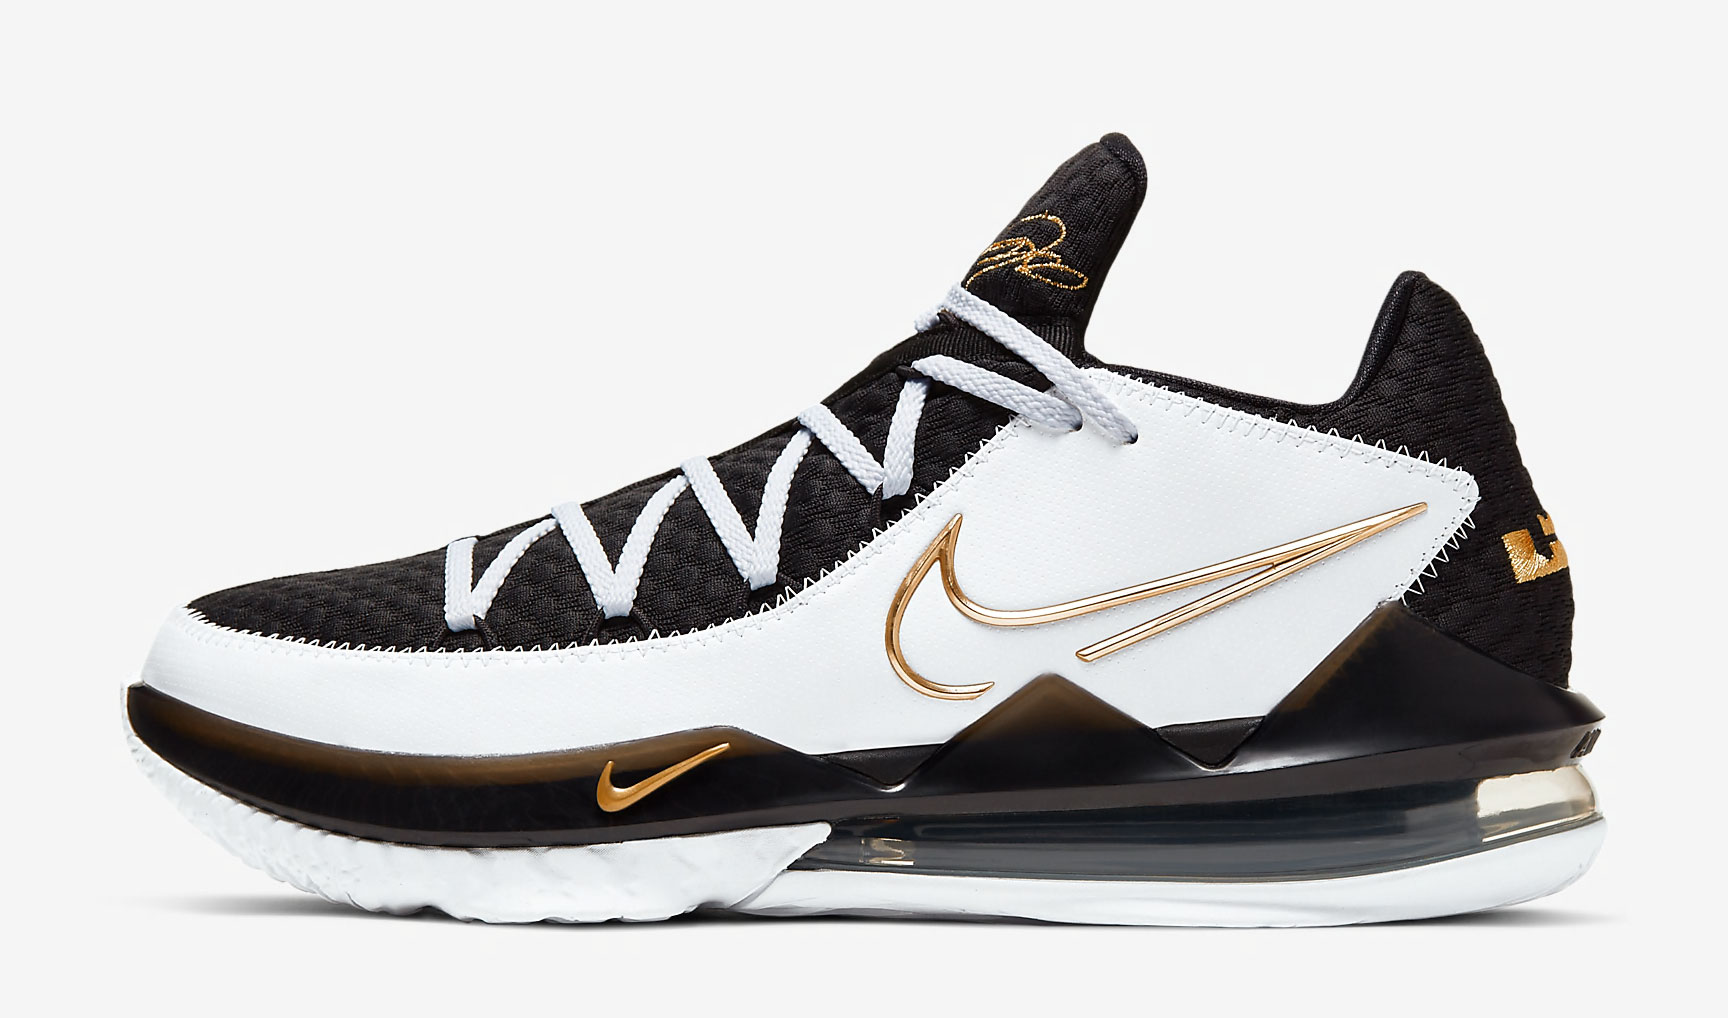 nike-lebron-17-low-white-black-gold-release-date